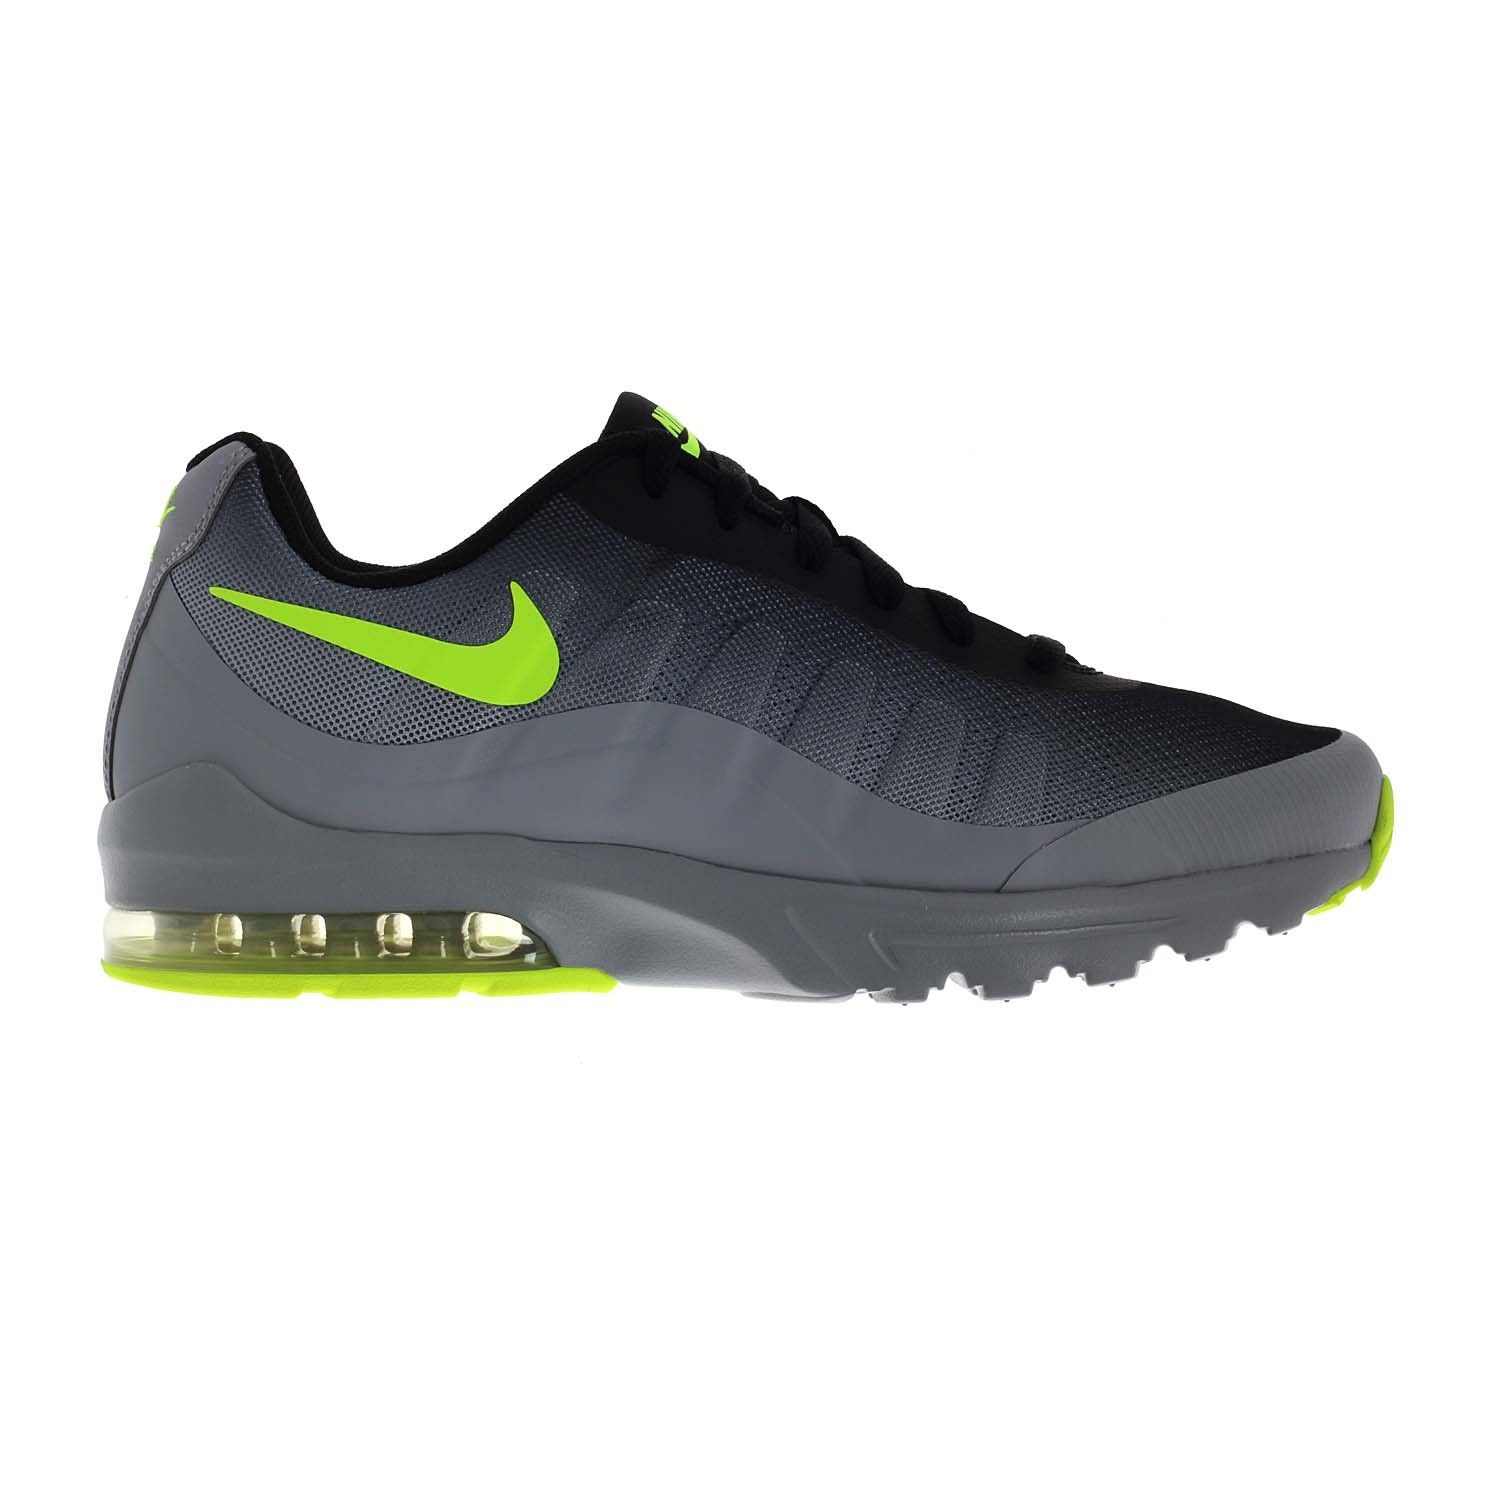 cheaper e6745 a78ca ... Running Shoes BlackWhite Nike Air Max Invigor Print (749688-070) ...